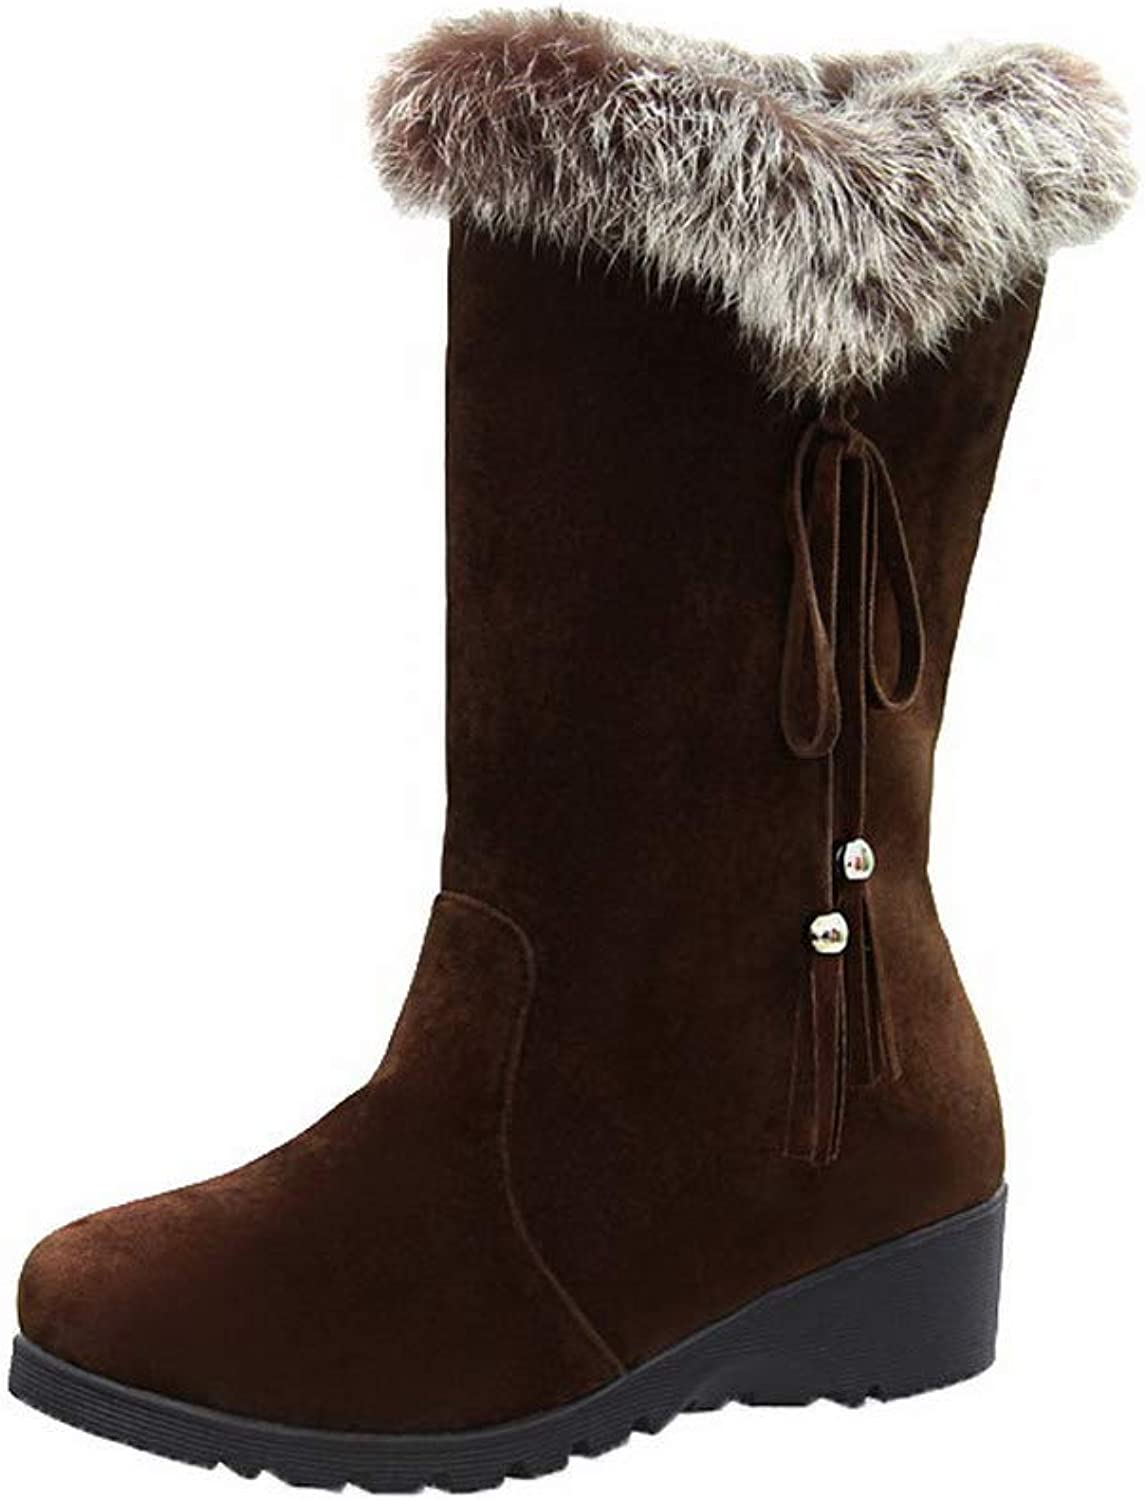 AmoonyFashion Women's Low-Heels Assorted color Round-Toe Frosted Pull-On Boots, BUSXT124576